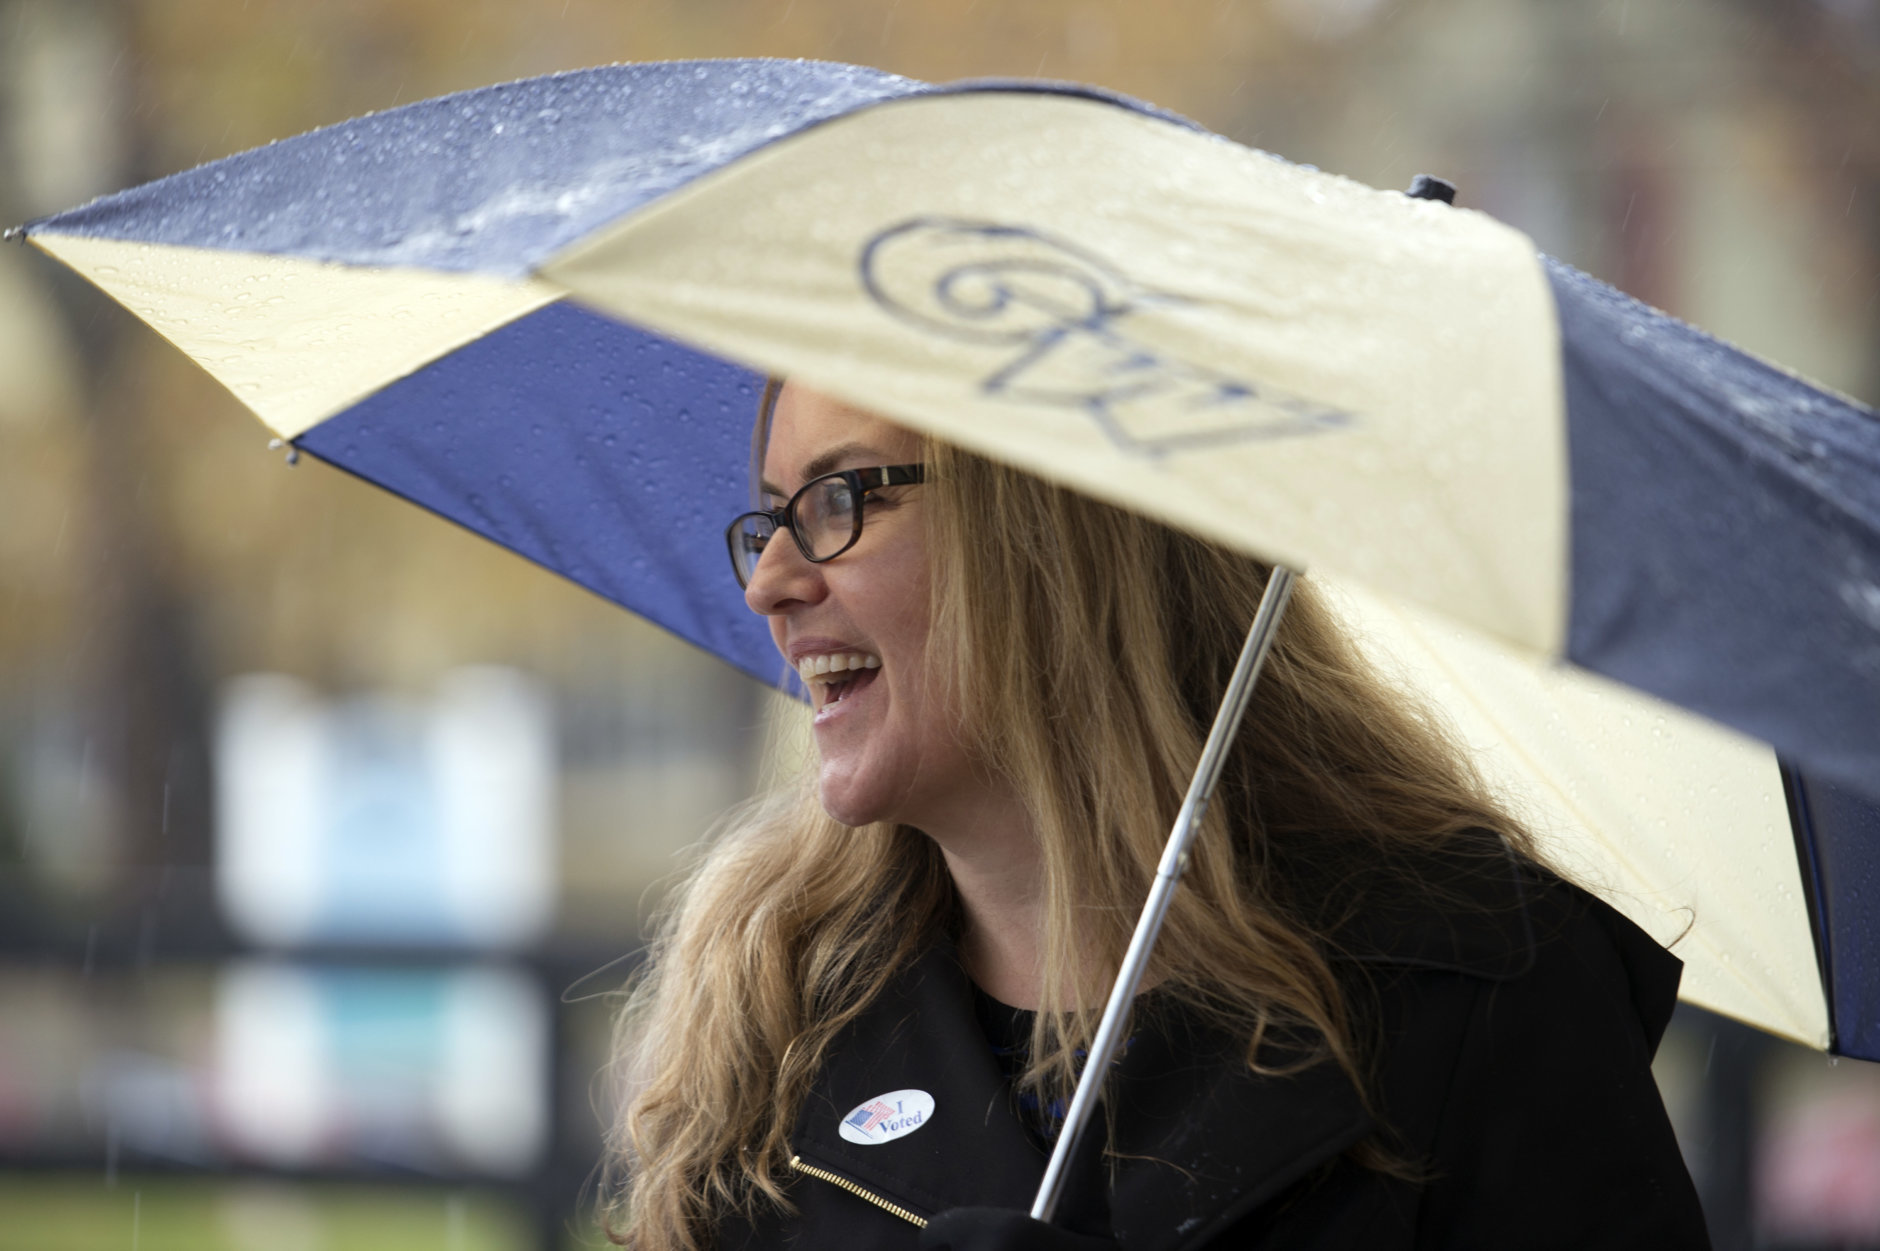 Virginia Democratic congressional candidate Jennifer Wexton, a former prosecutor and current Democratic state senator, greets voters at the Clarke County School Offices, Tuesday, Nov. 6, 2018 in Berryville, Va. Wexton is running against two-term Rep. Barbara Comstock, R-Va. (AP Photo/Douglas Graham)